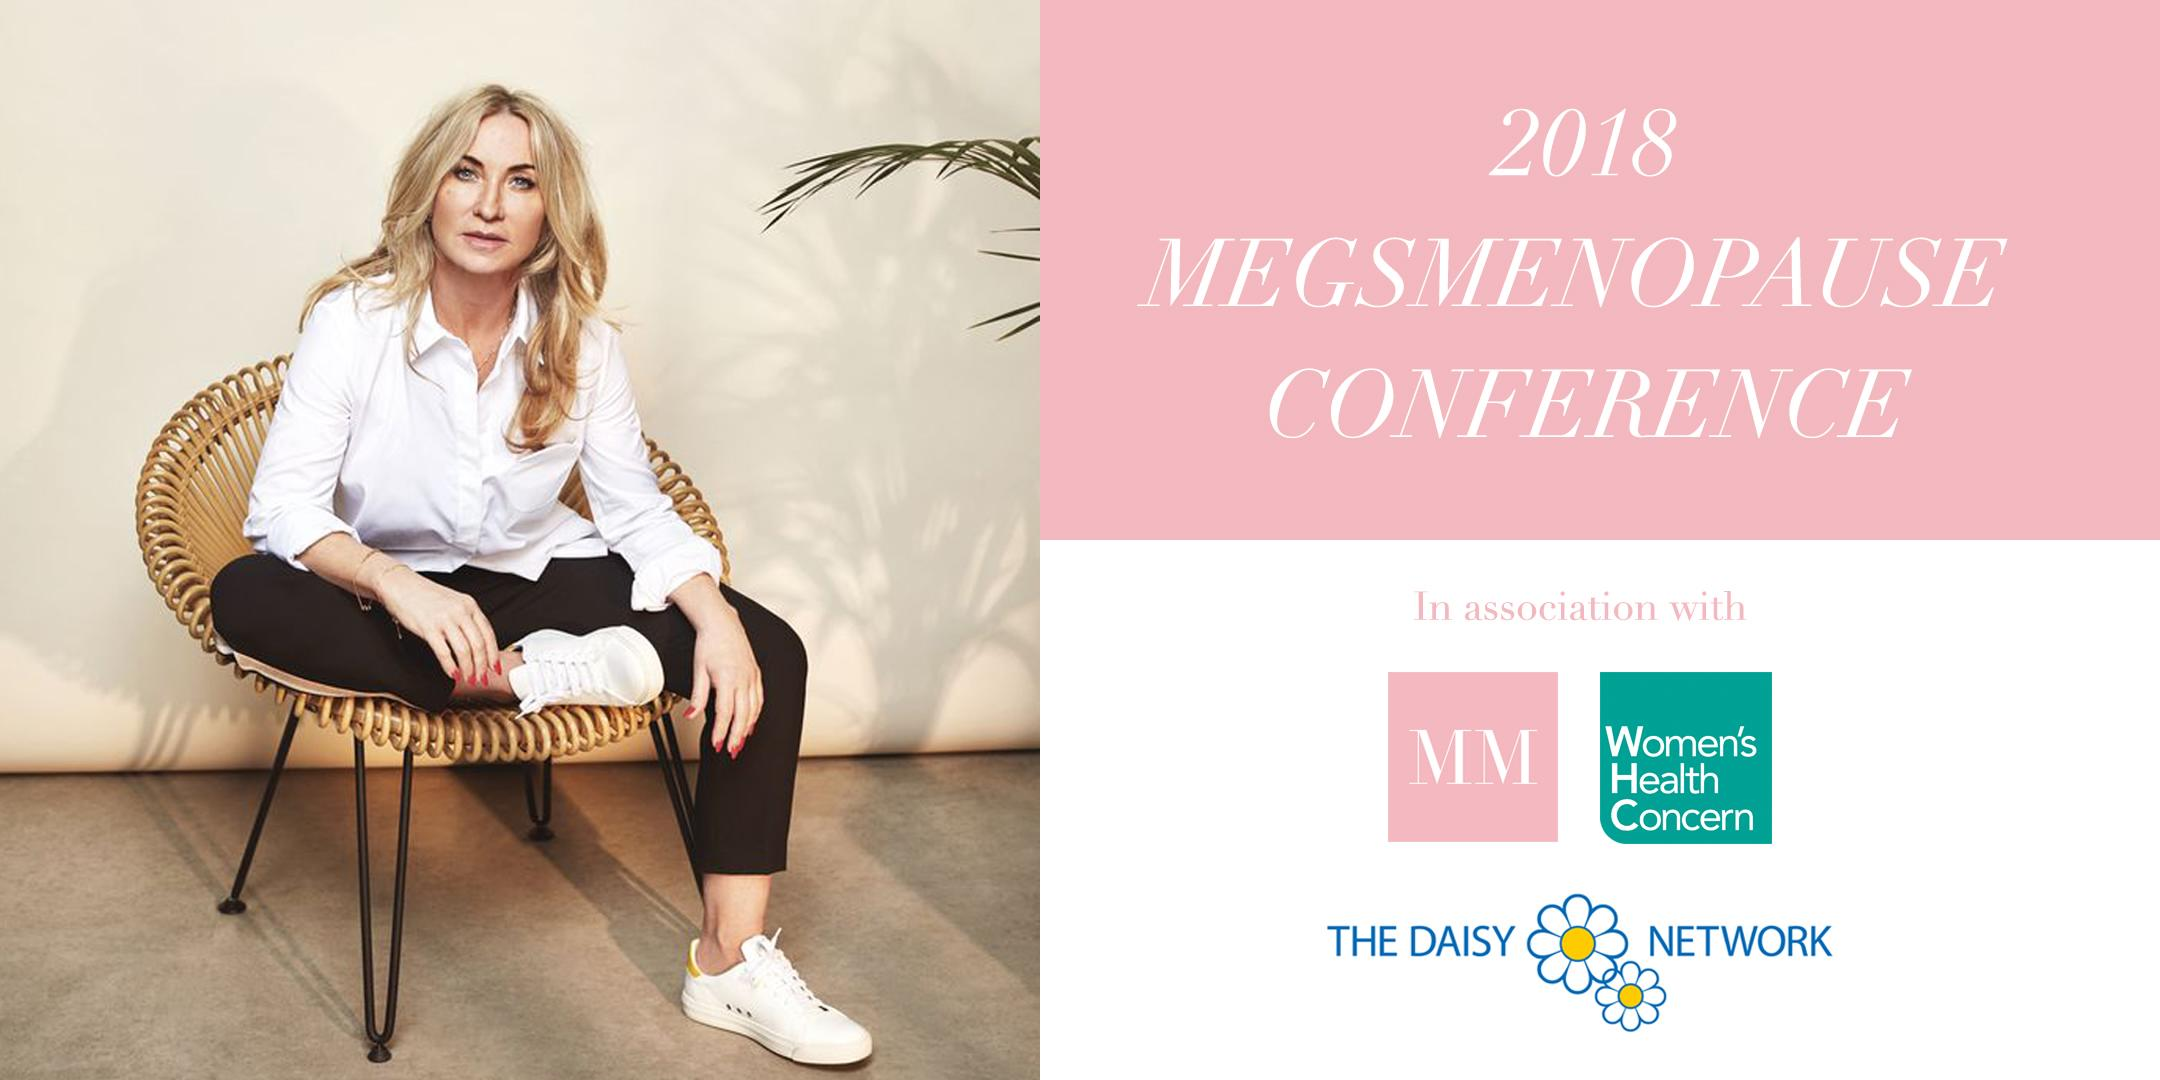 Meg's Menopause Conference